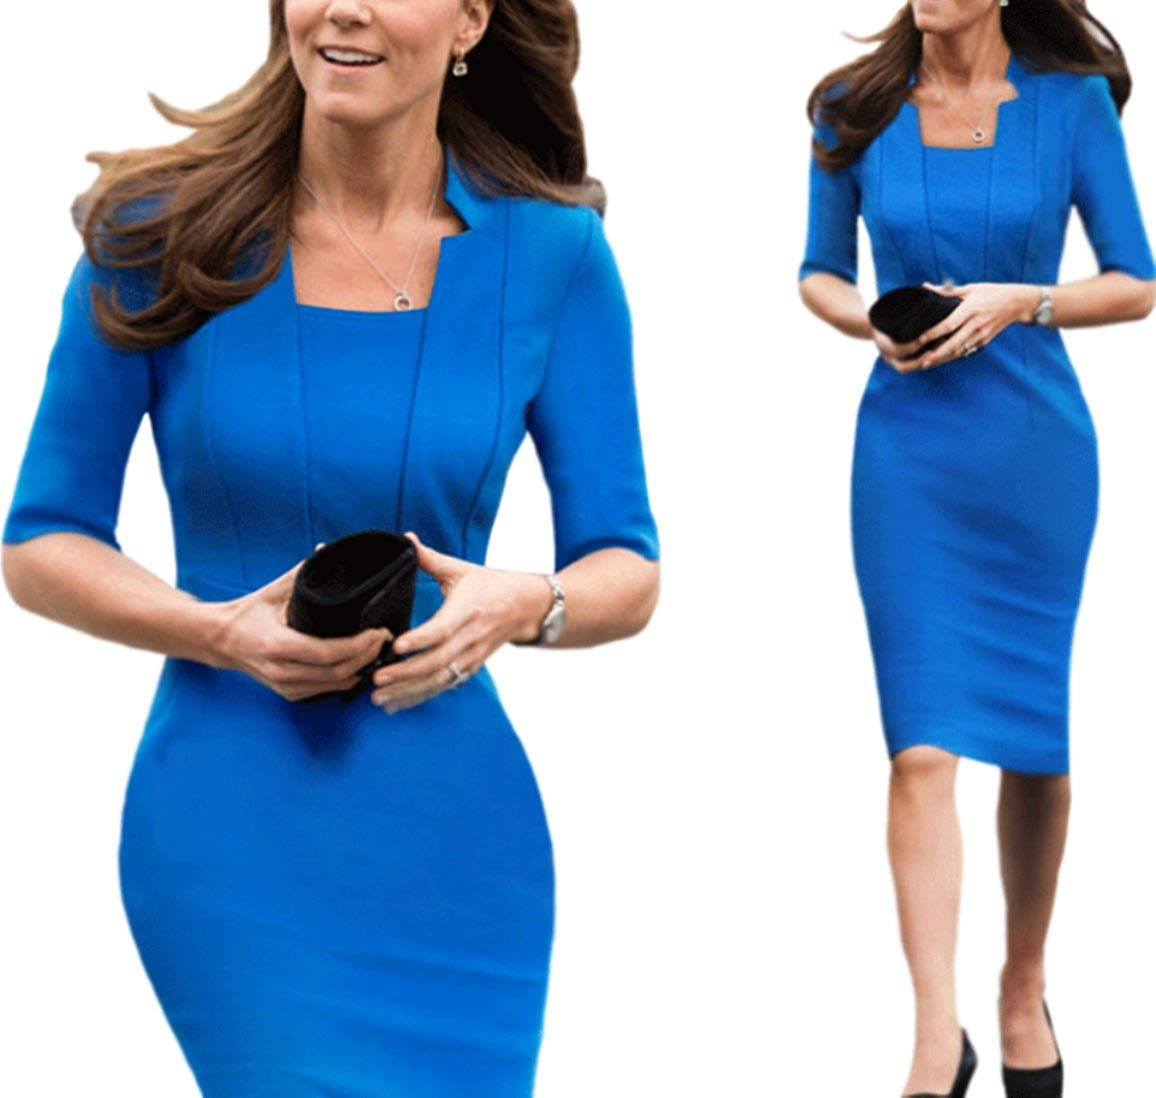 673f377acf6ee Get Quotations · Unomatch Kate Middleton Wrinkle Based Top Collar Neck Knee  Length Dress Blue